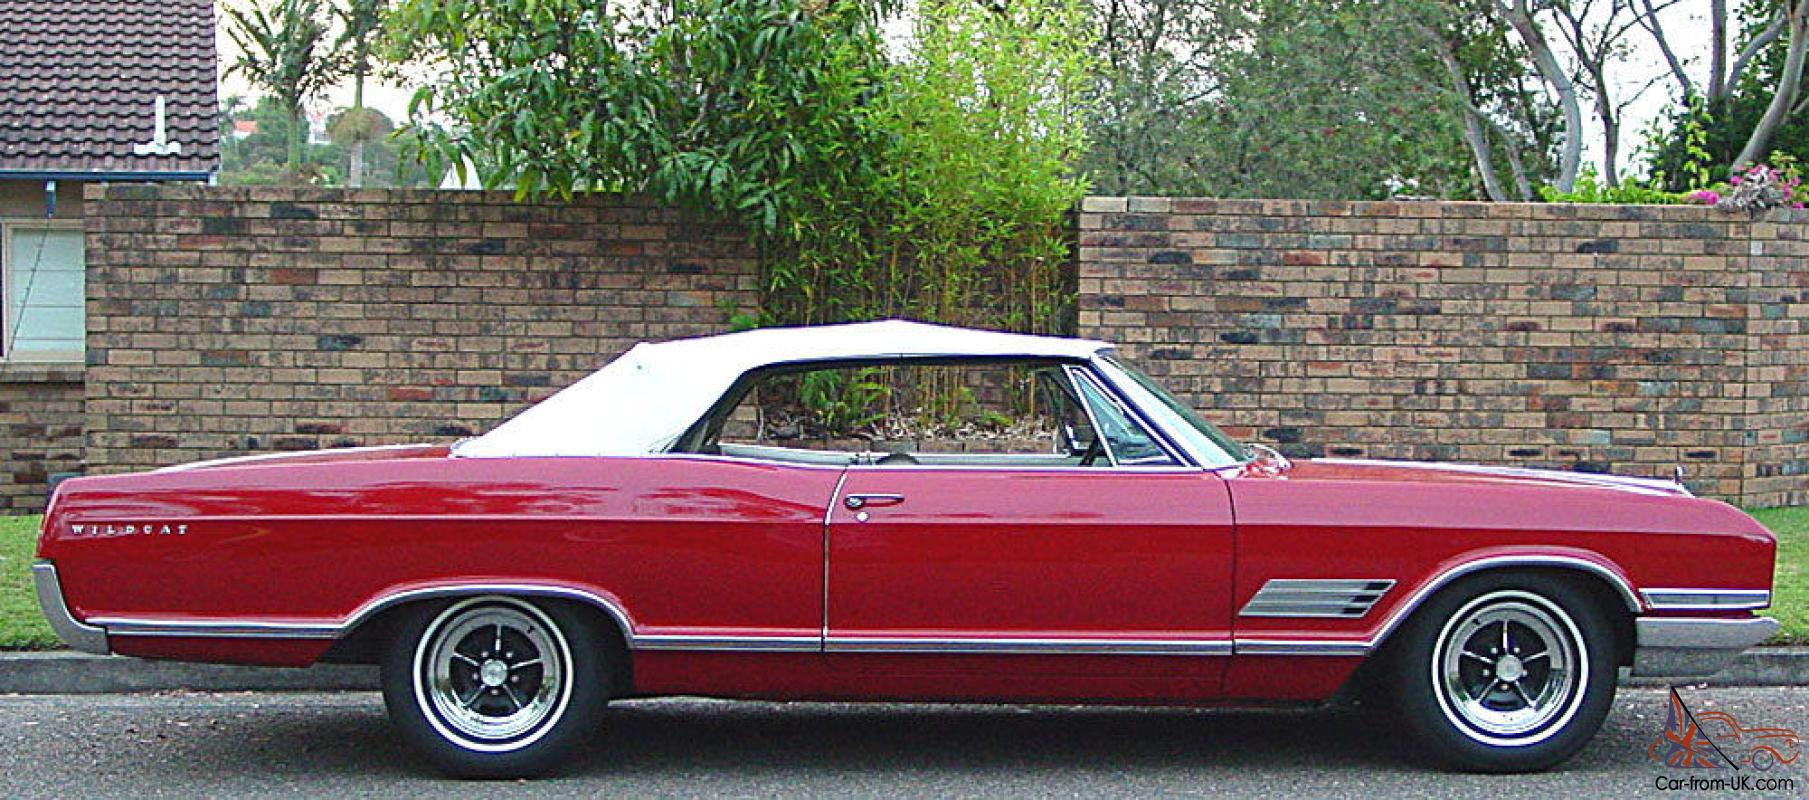 Lhd 1966 Buick Wildcat Convertible Restored Sydney Matching Numbers